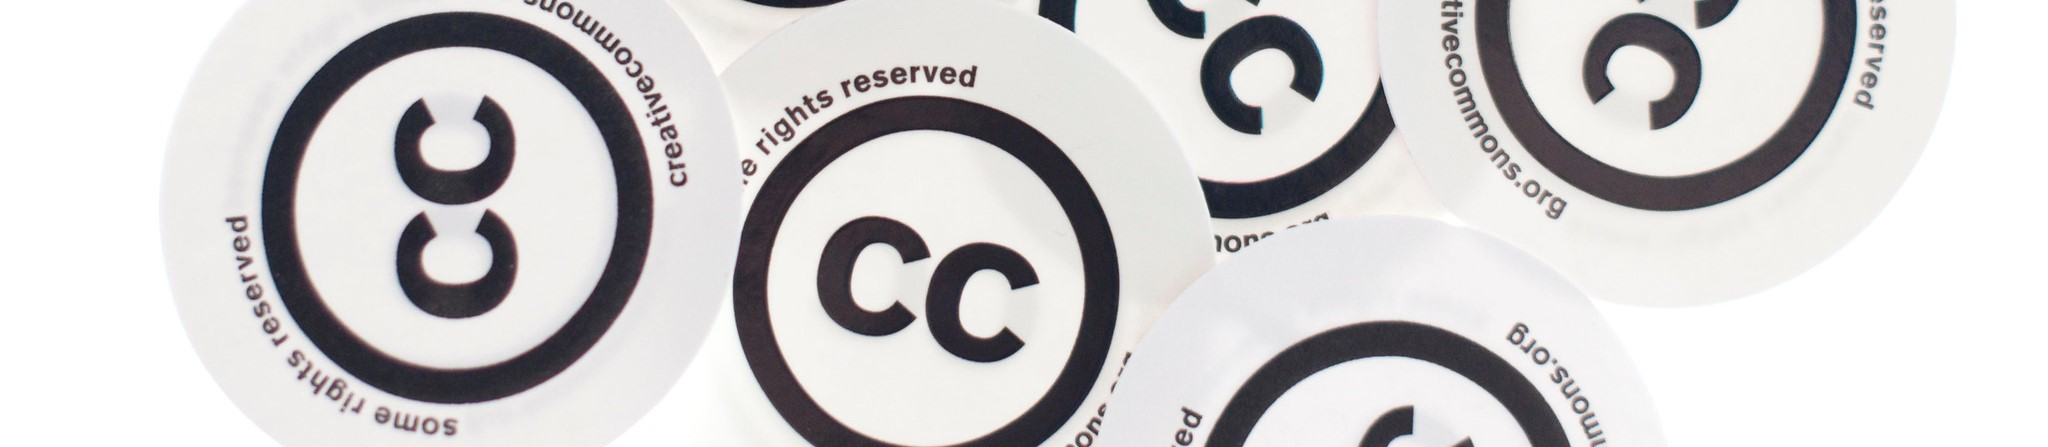 Round Creative Commons license stickers in random pattern